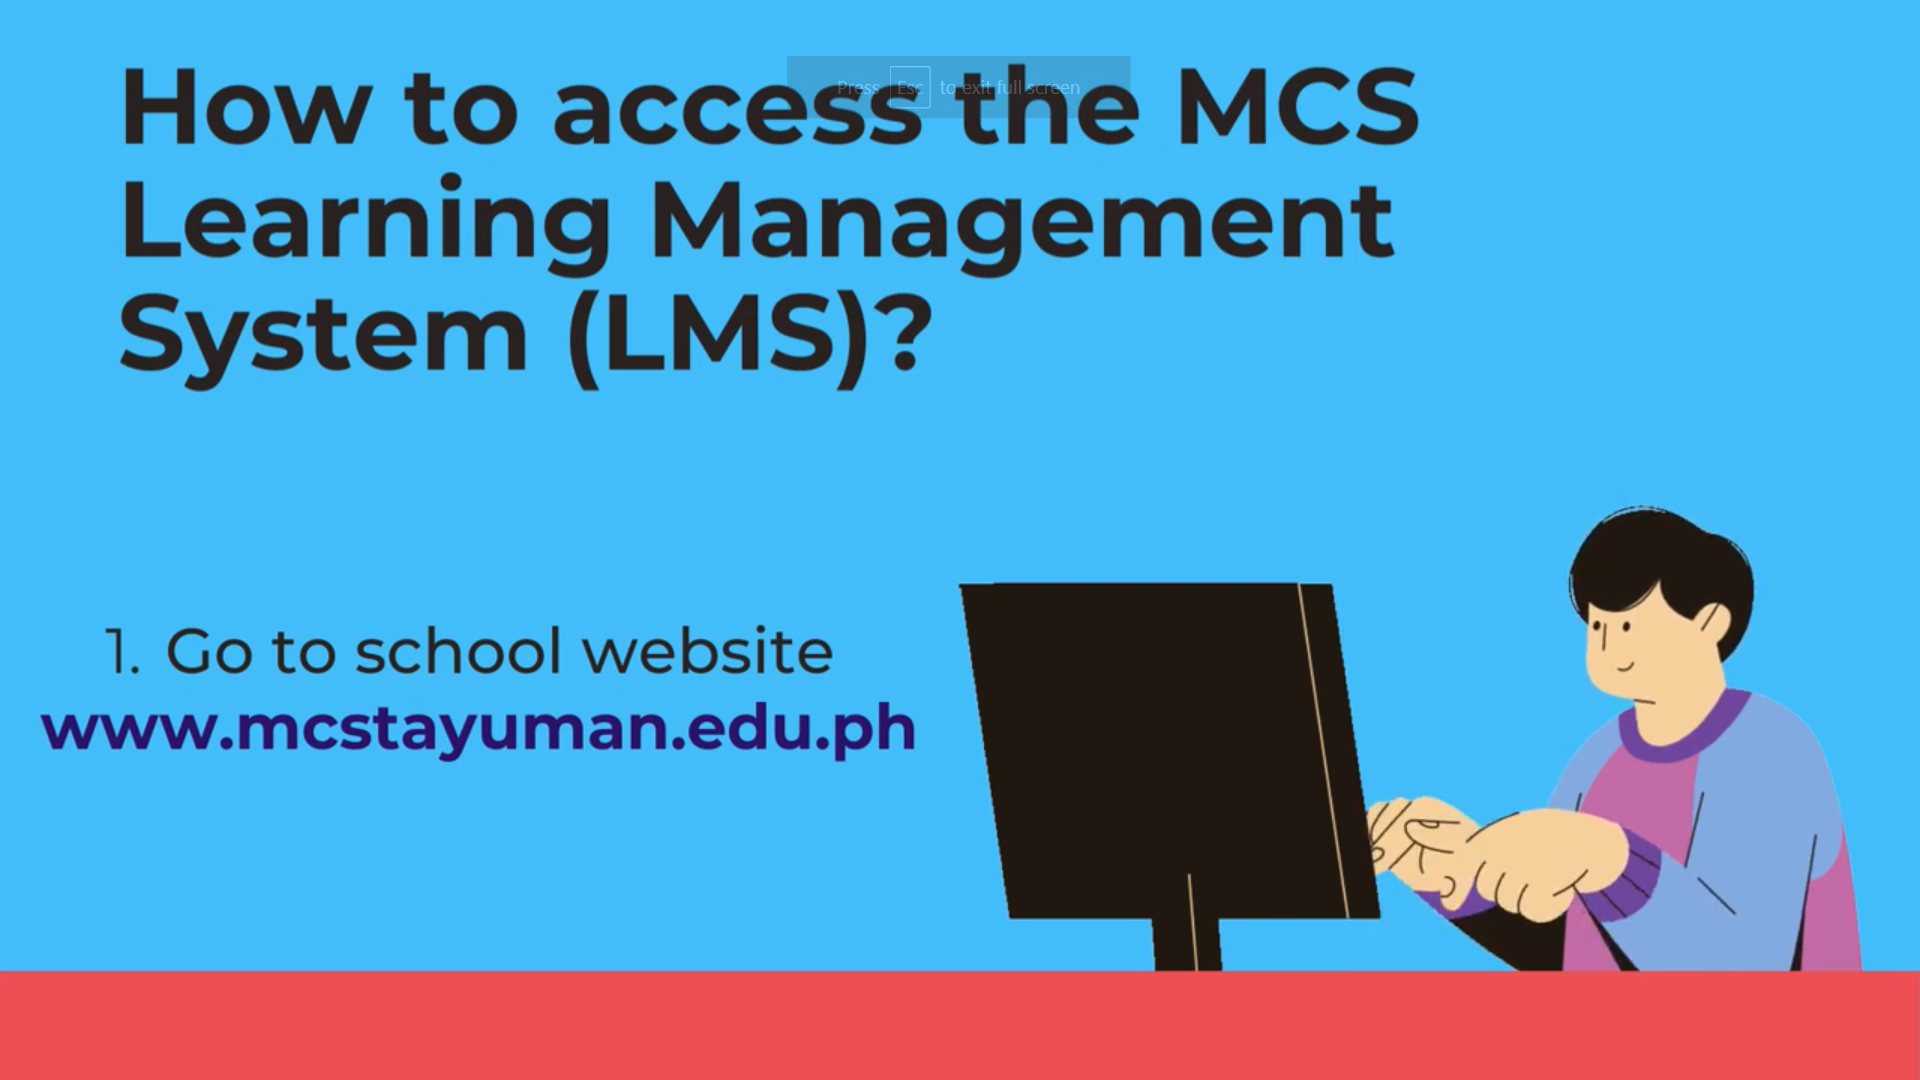 How to access the MCS Learning Management System (LMS)?